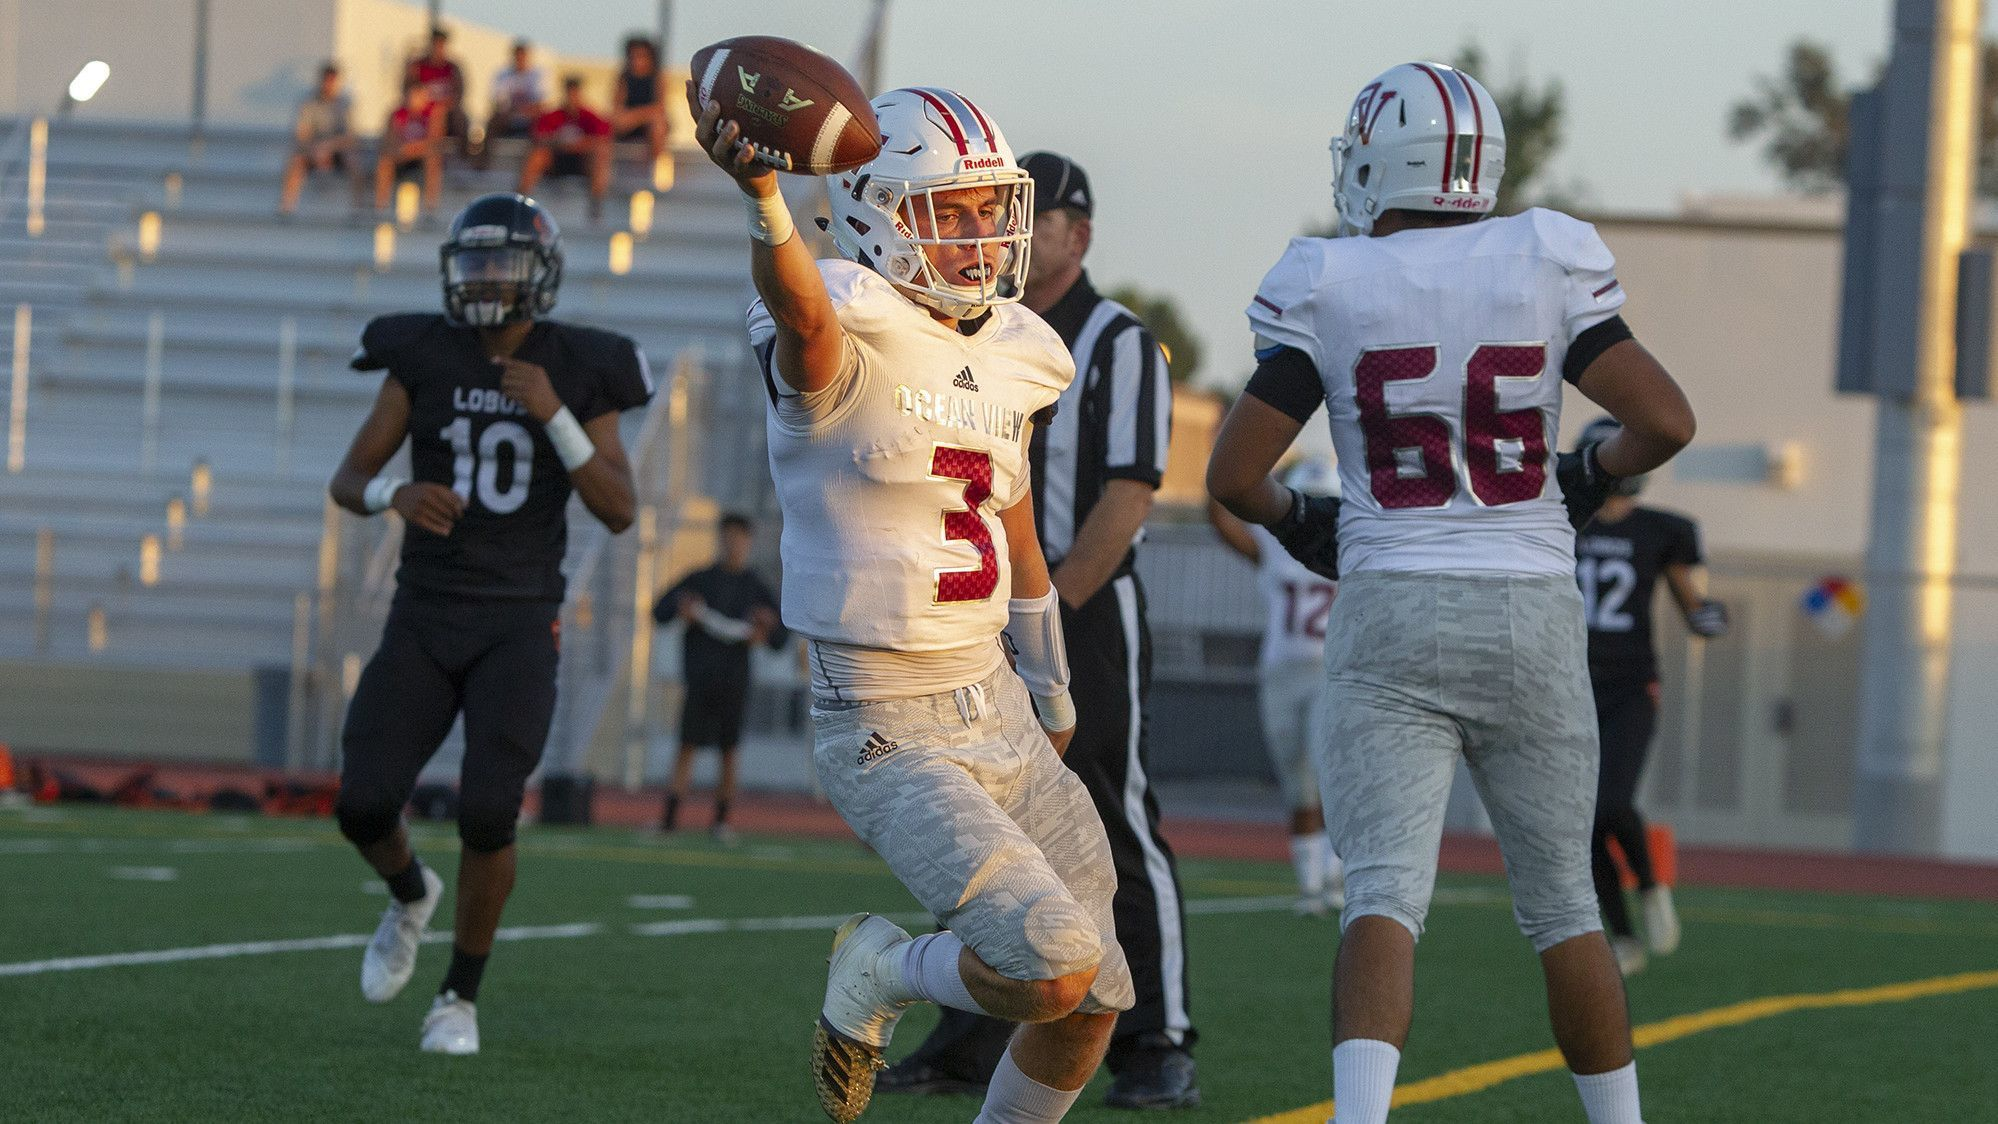 Week 4 High School Football Preview: Estancia vs. Ocean View